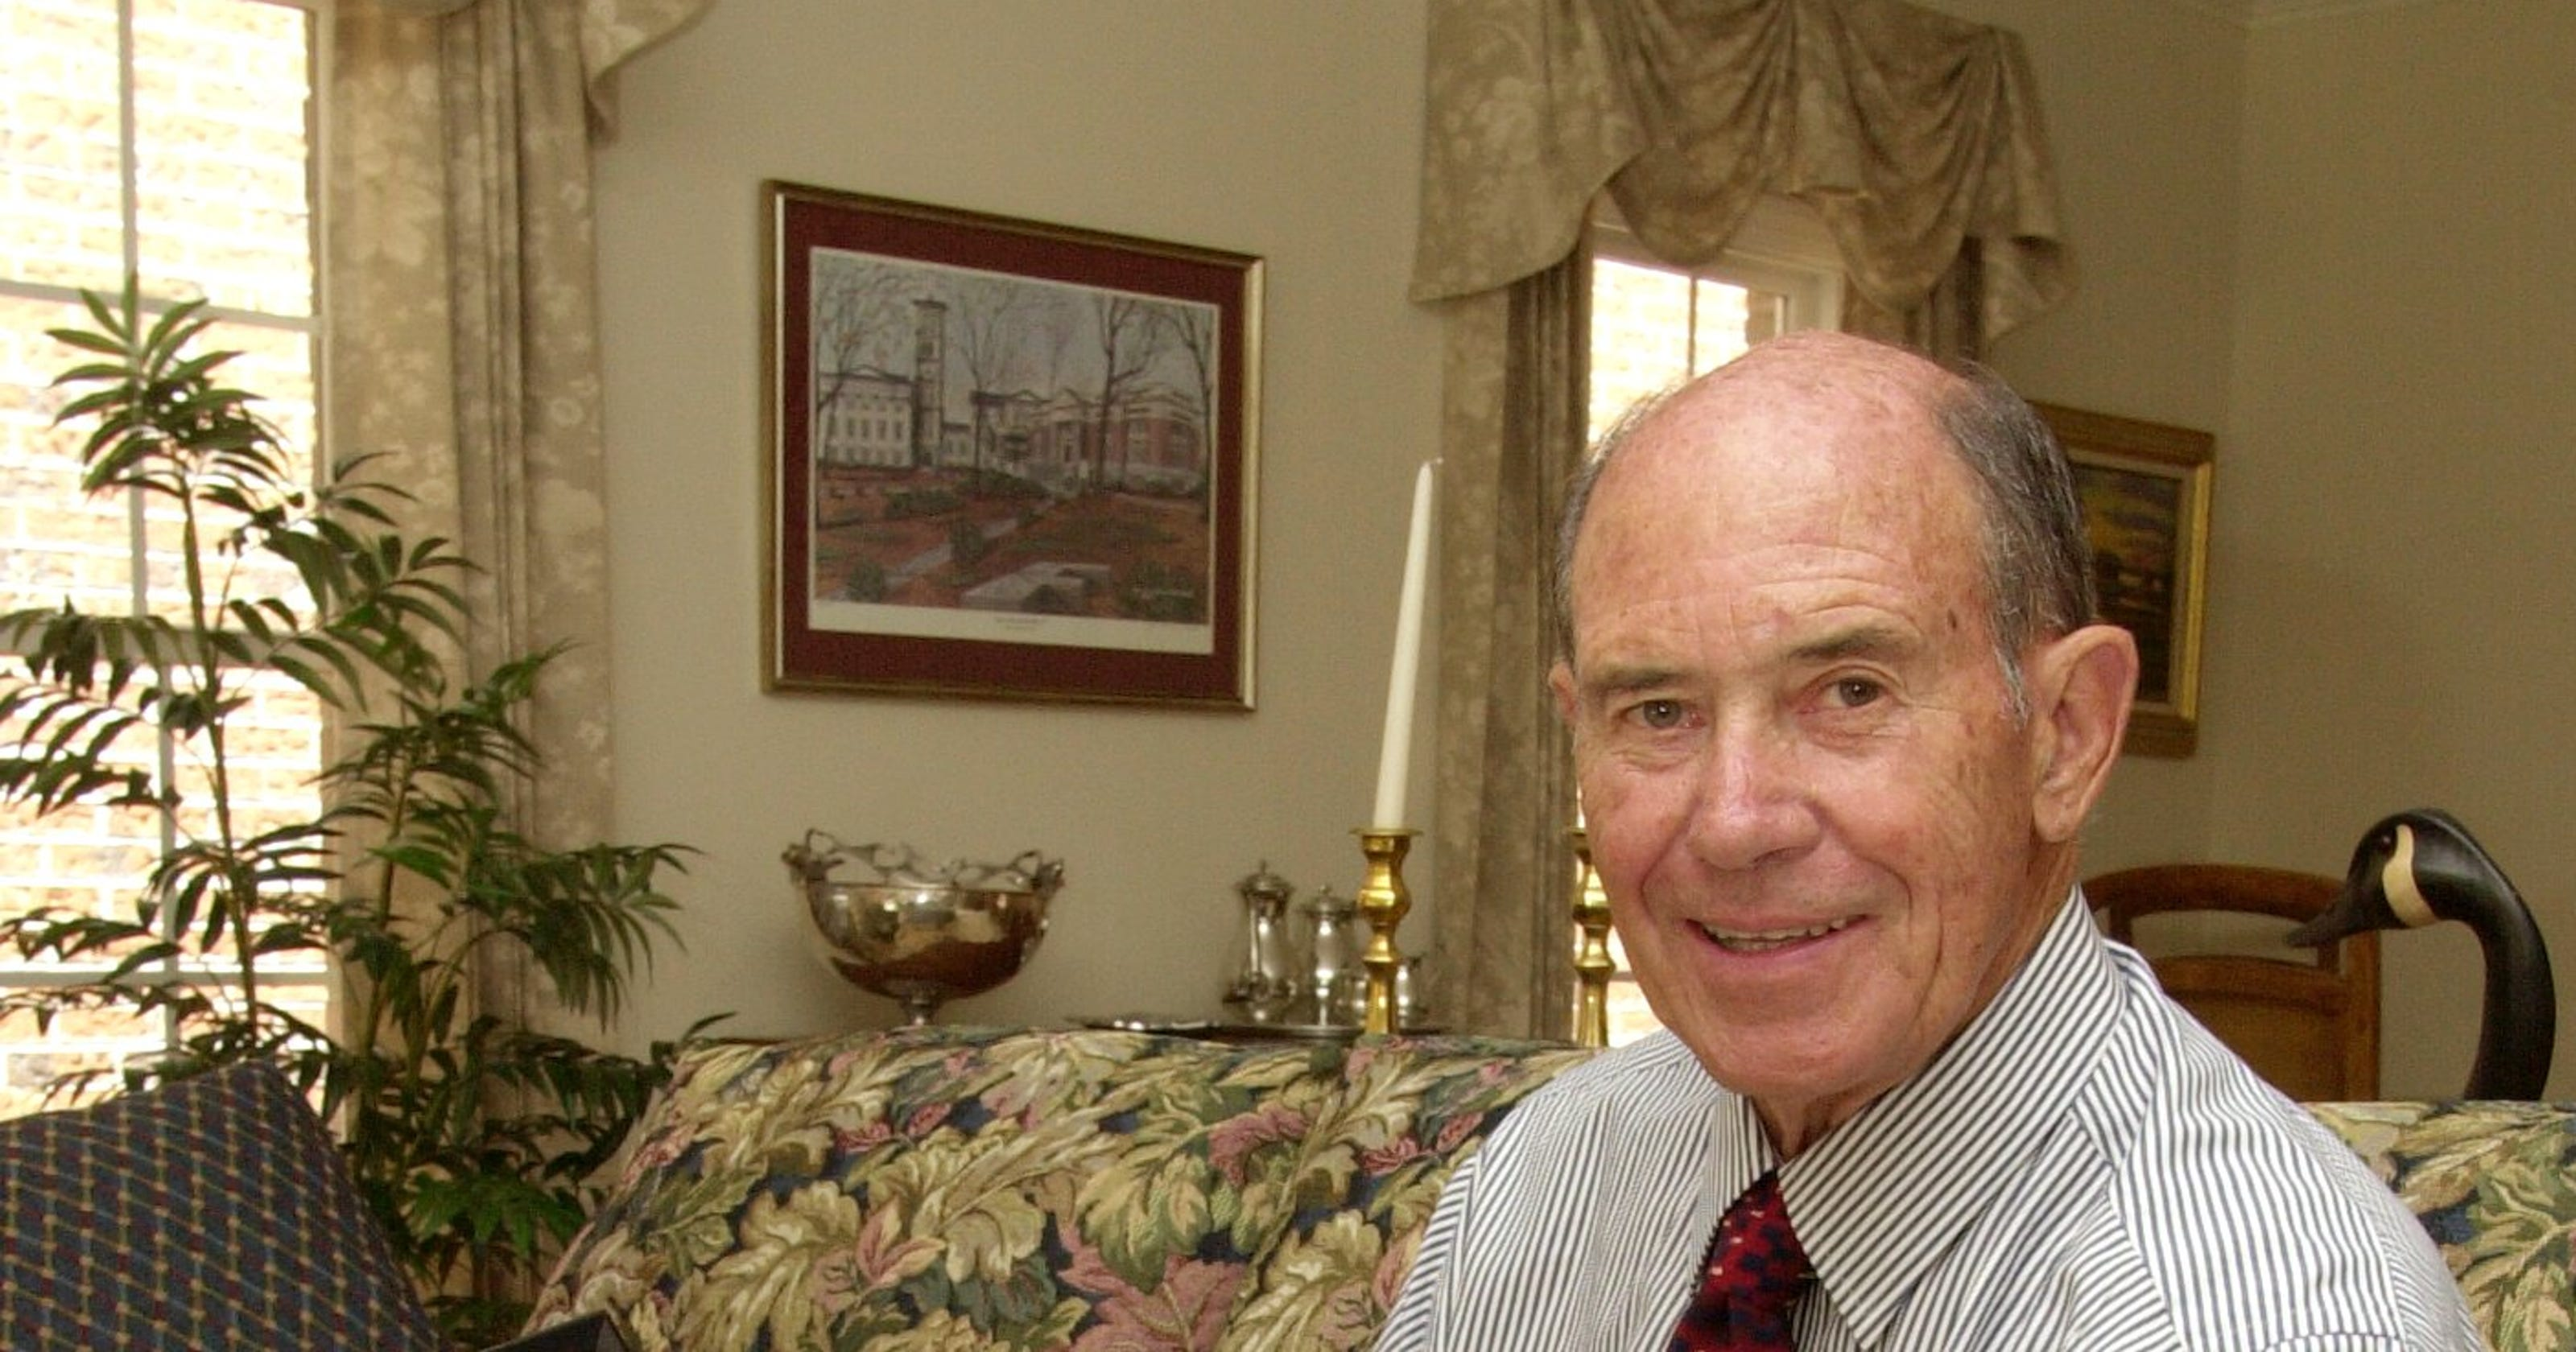 Funeral scheduled for former Greenville police chief